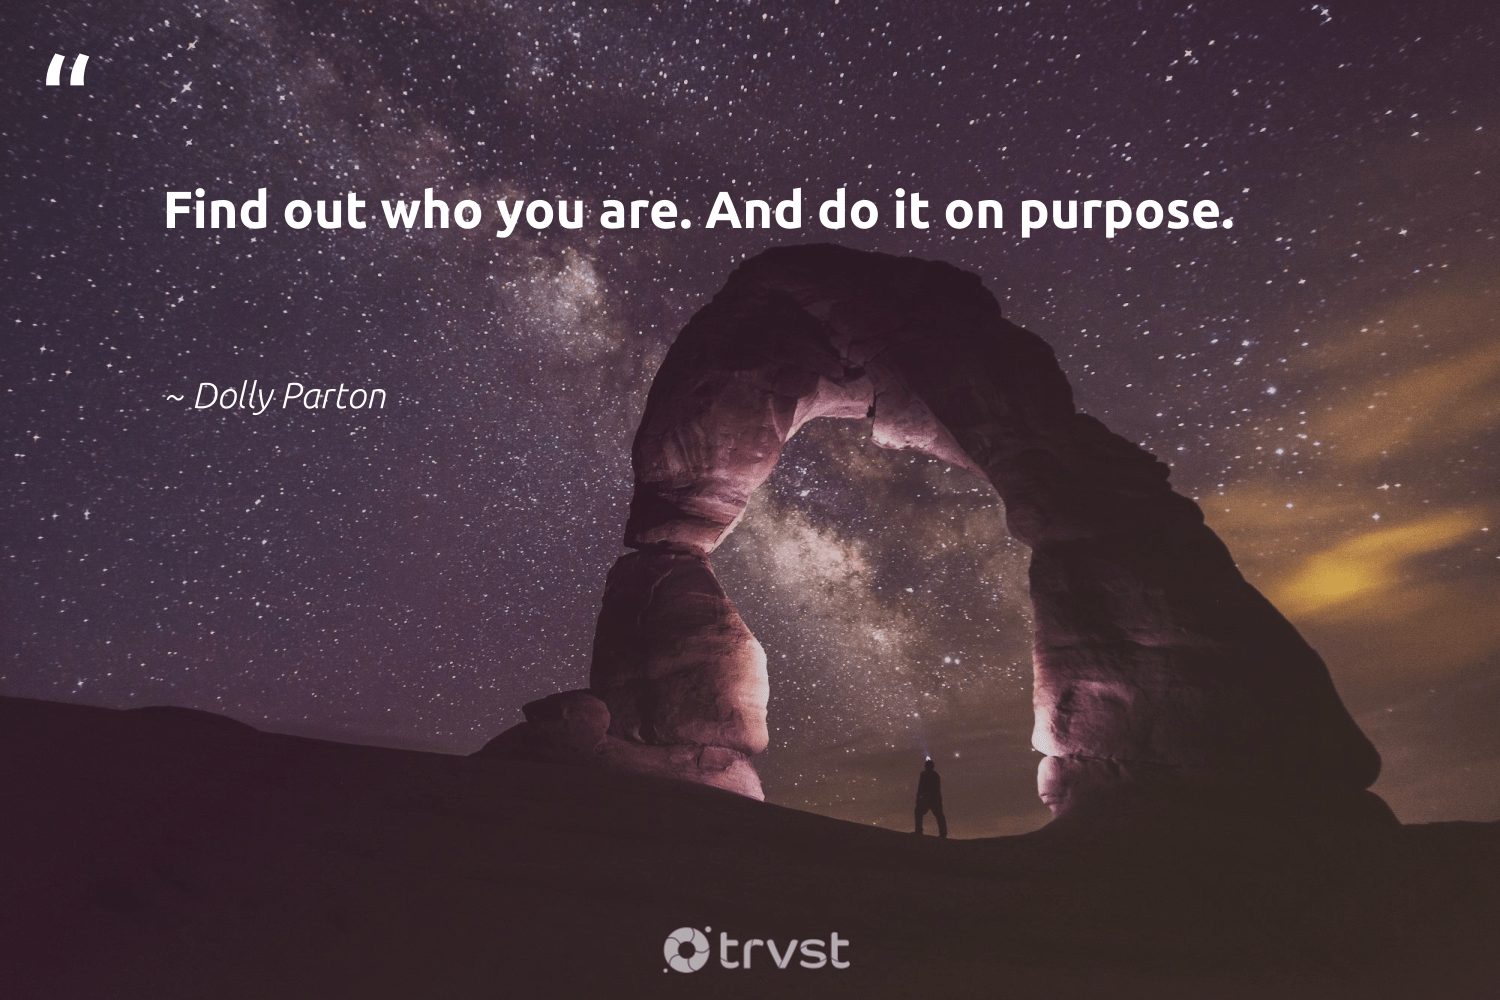 """""""Find out who you are. And do it on purpose.""""  - Dolly Parton #trvst #quotes #purpose #findingpupose #mindset #togetherwecan #dogood #findpurpose #changemakers #begreat #changetheworld #purposedriven"""